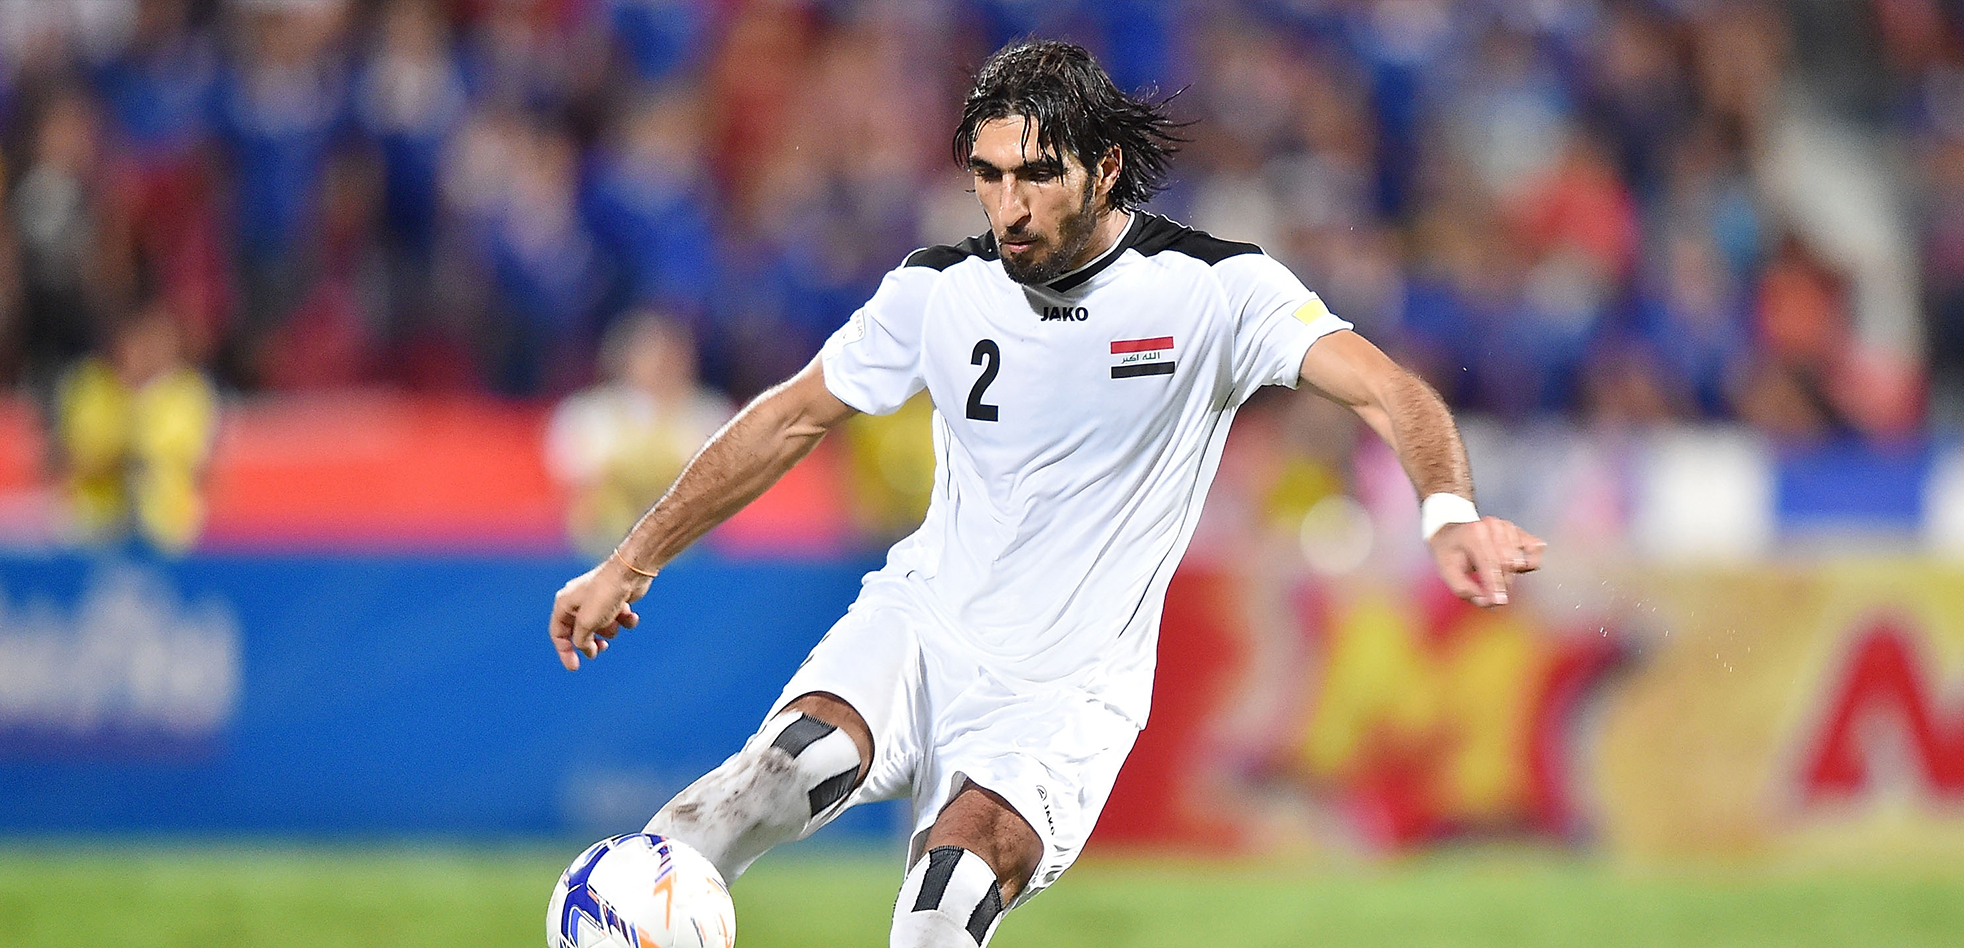 Delight as Al-Shorta confirm the signing of Ahmad Ibrahim